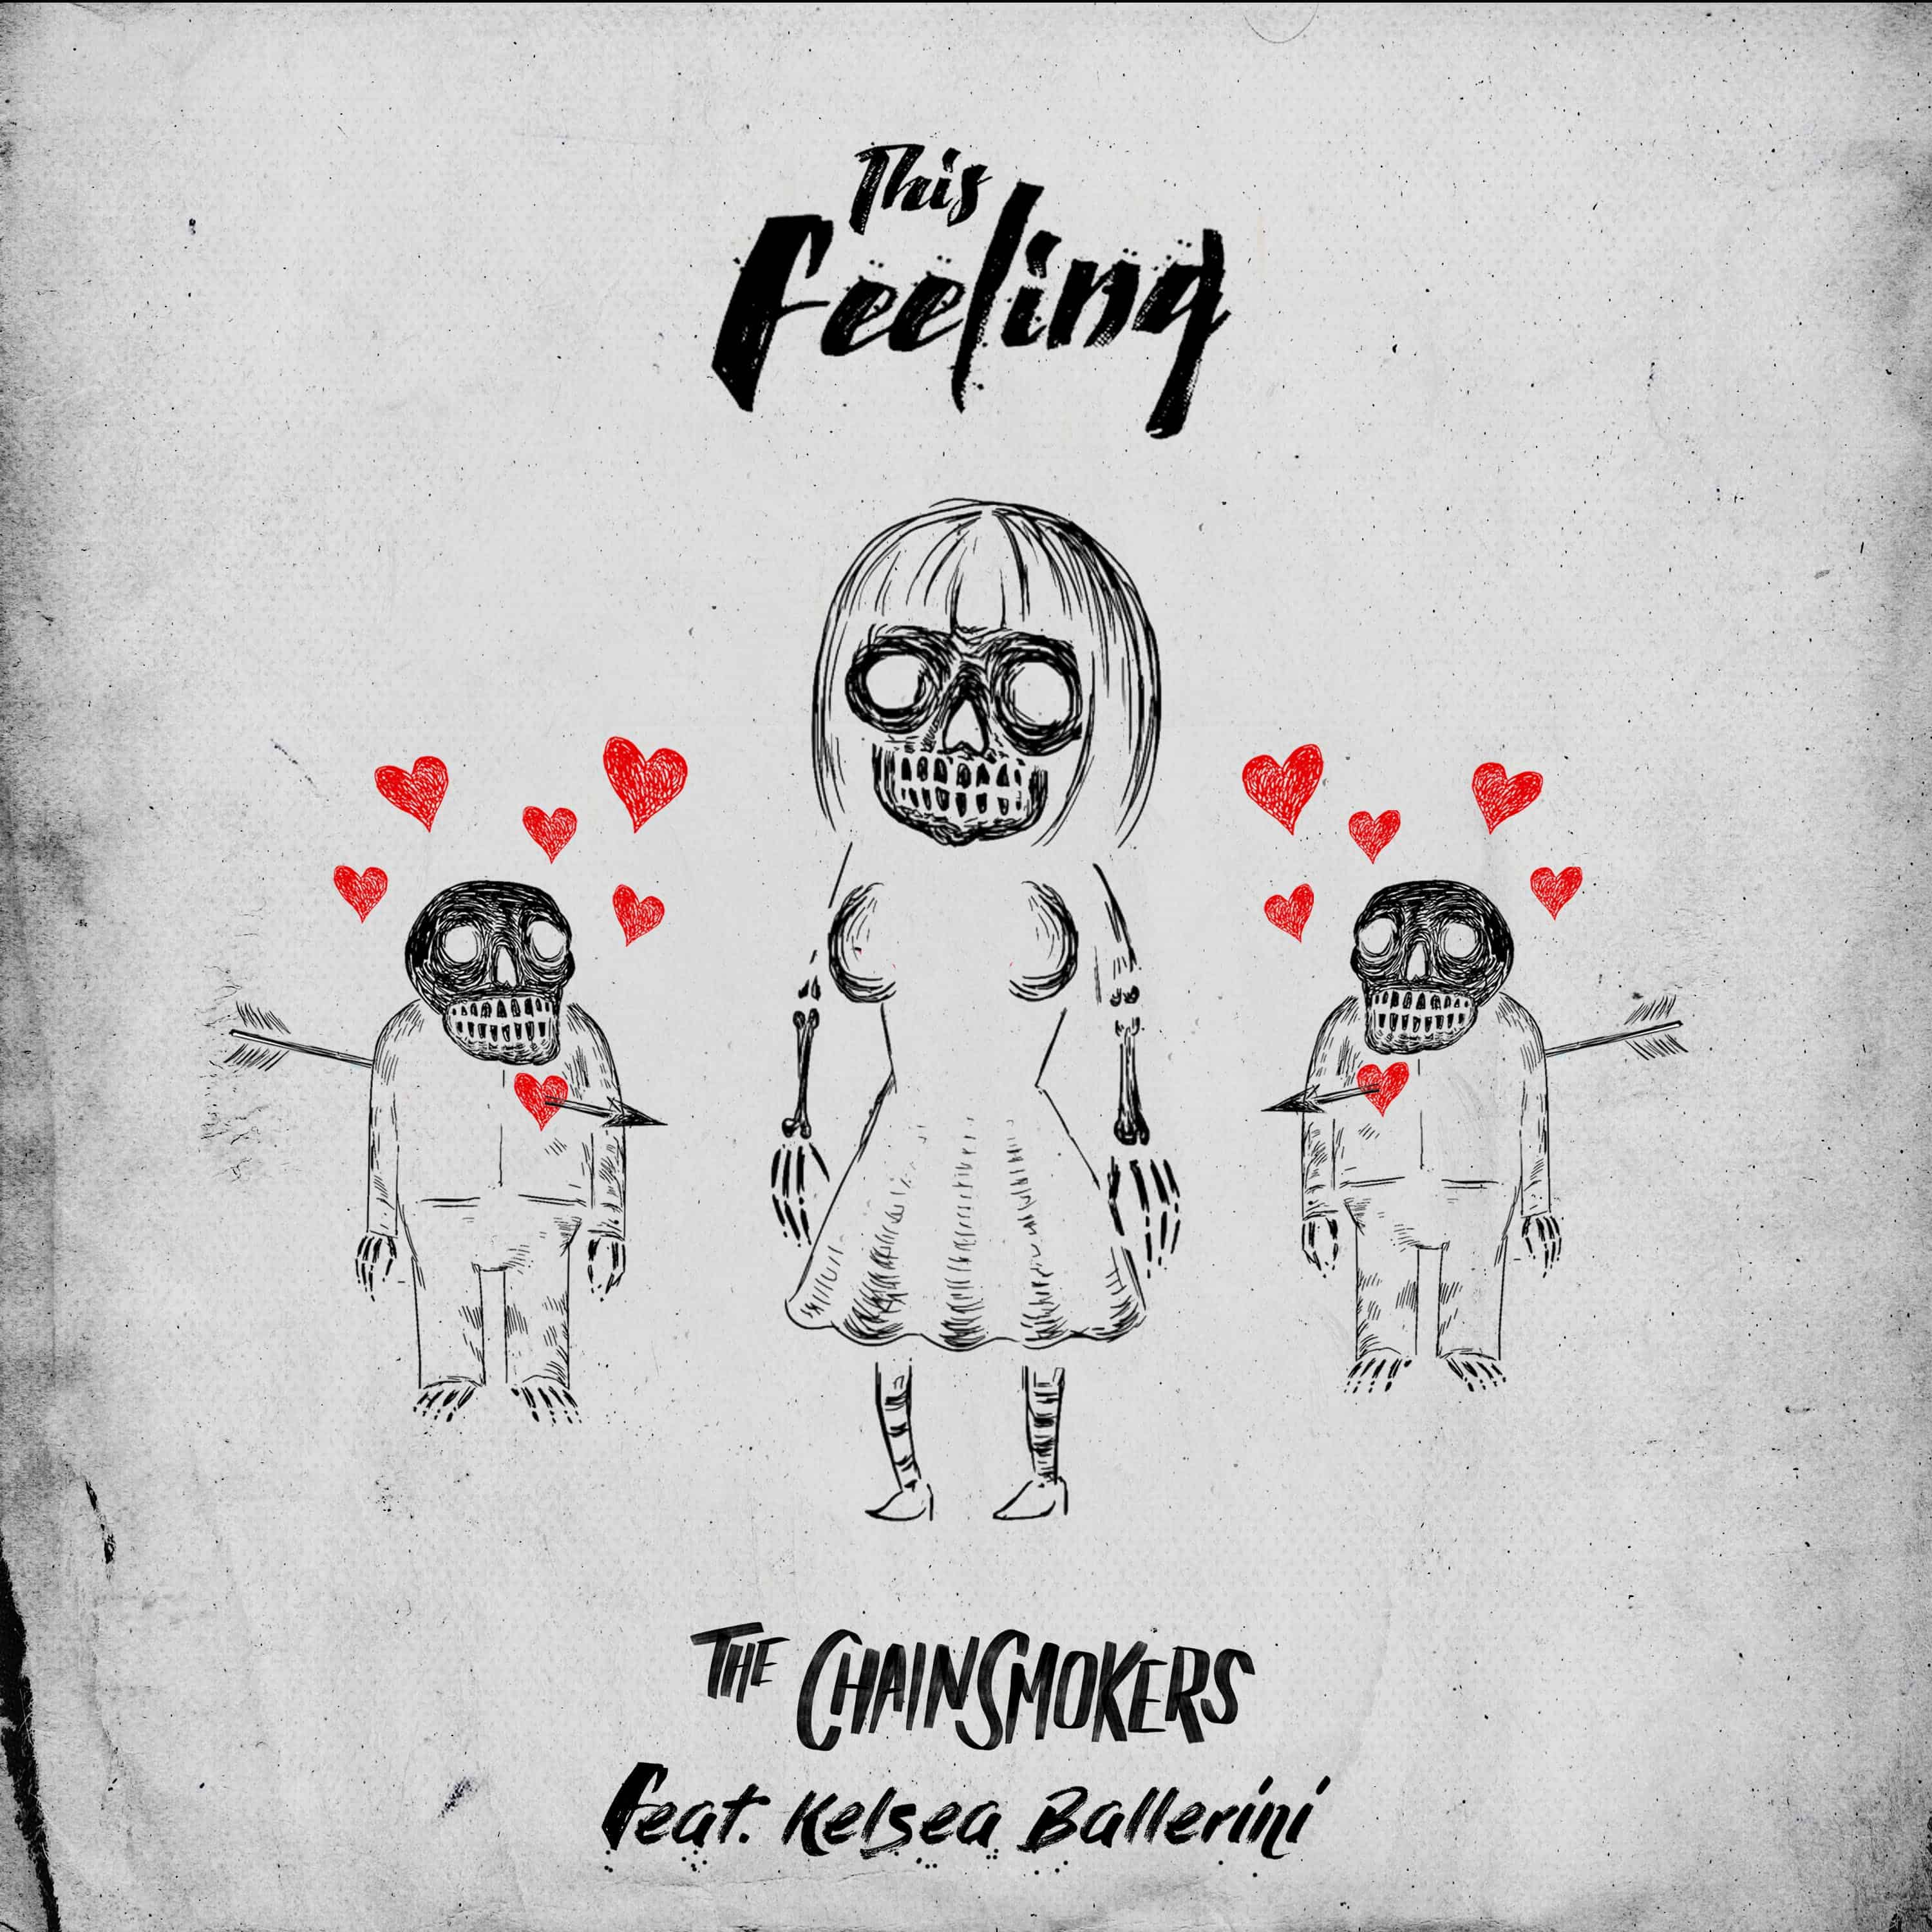 The Chainsmokers ft Kelsea Ballerini - This Feeling (Acapella